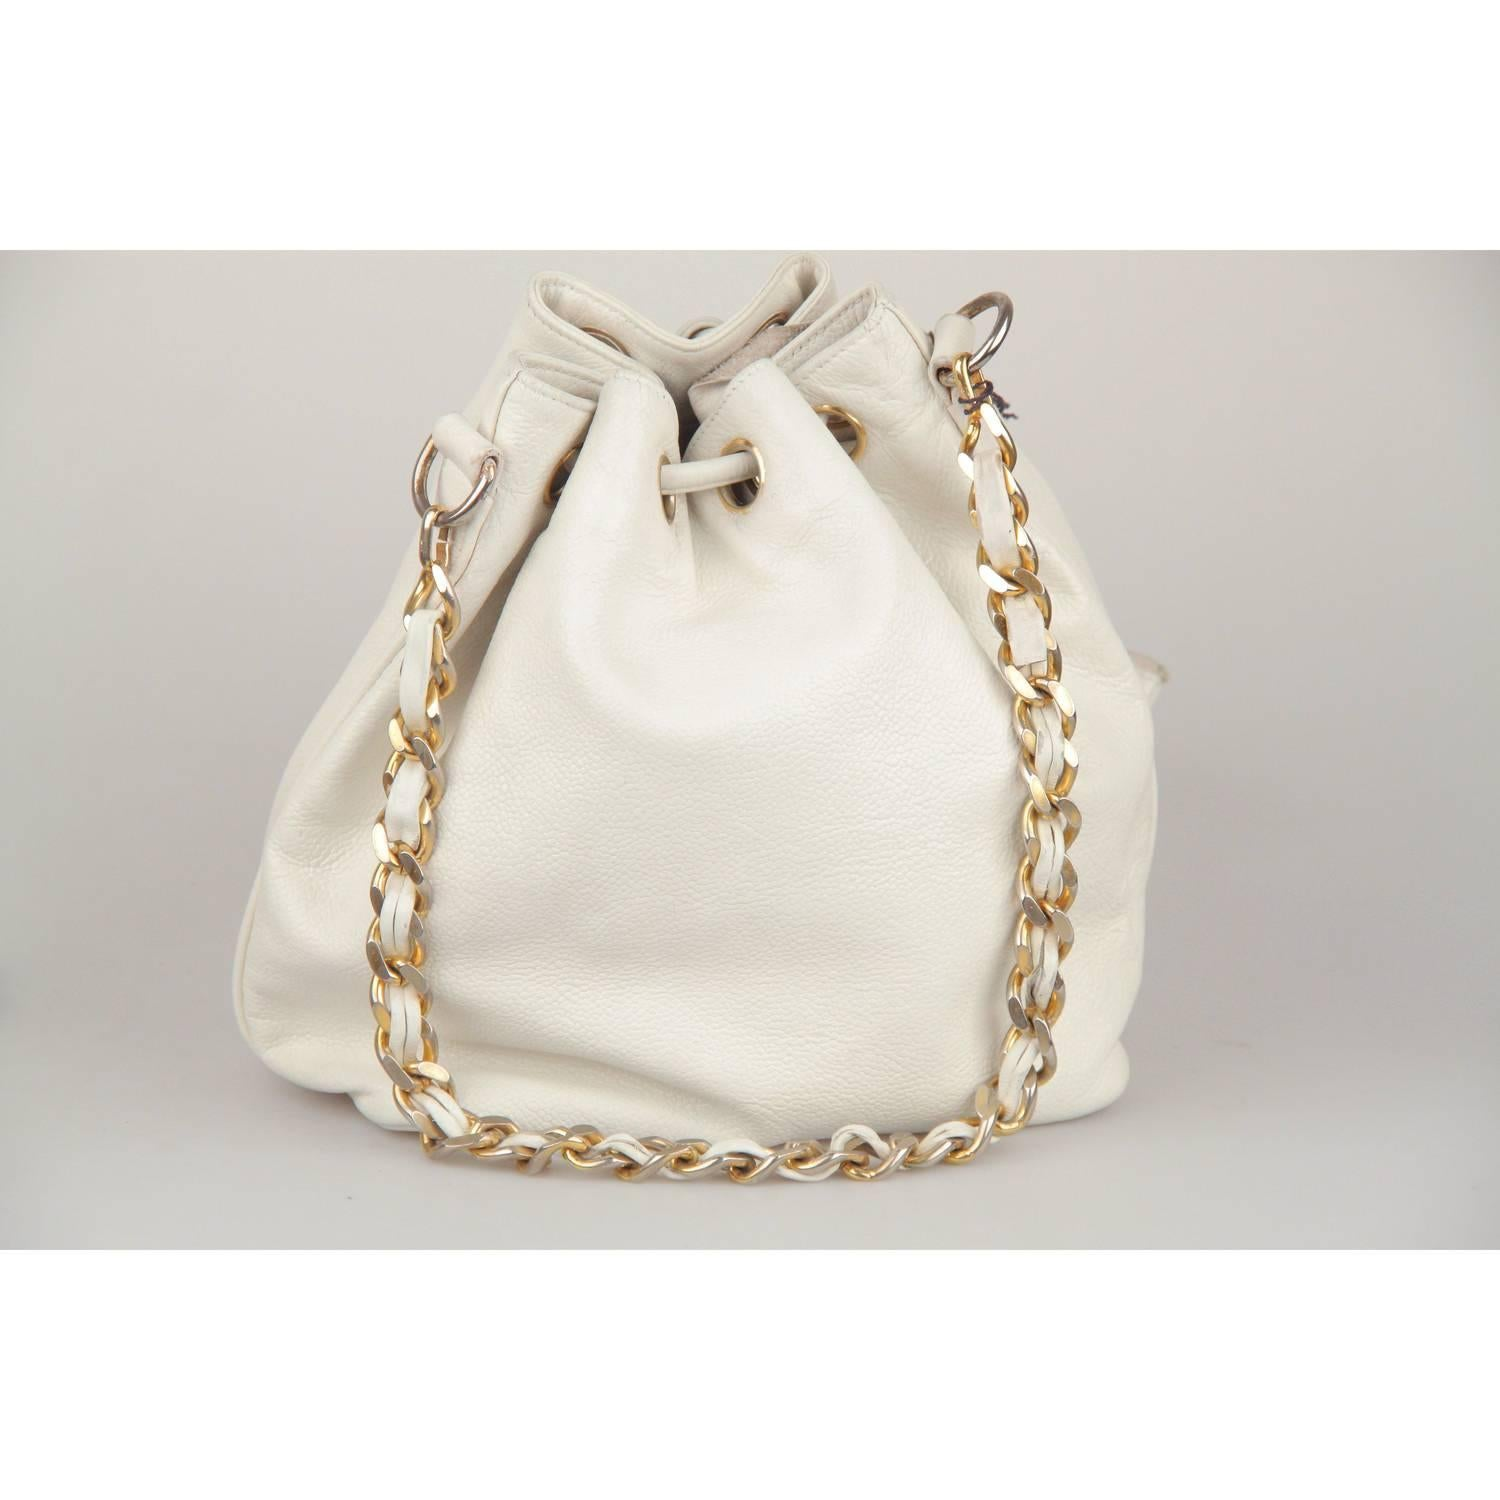 1093d137b85c CHANEL Vintage White Leather DRAWSTRING BAG with CC LOGO For Sale at 1stdibs